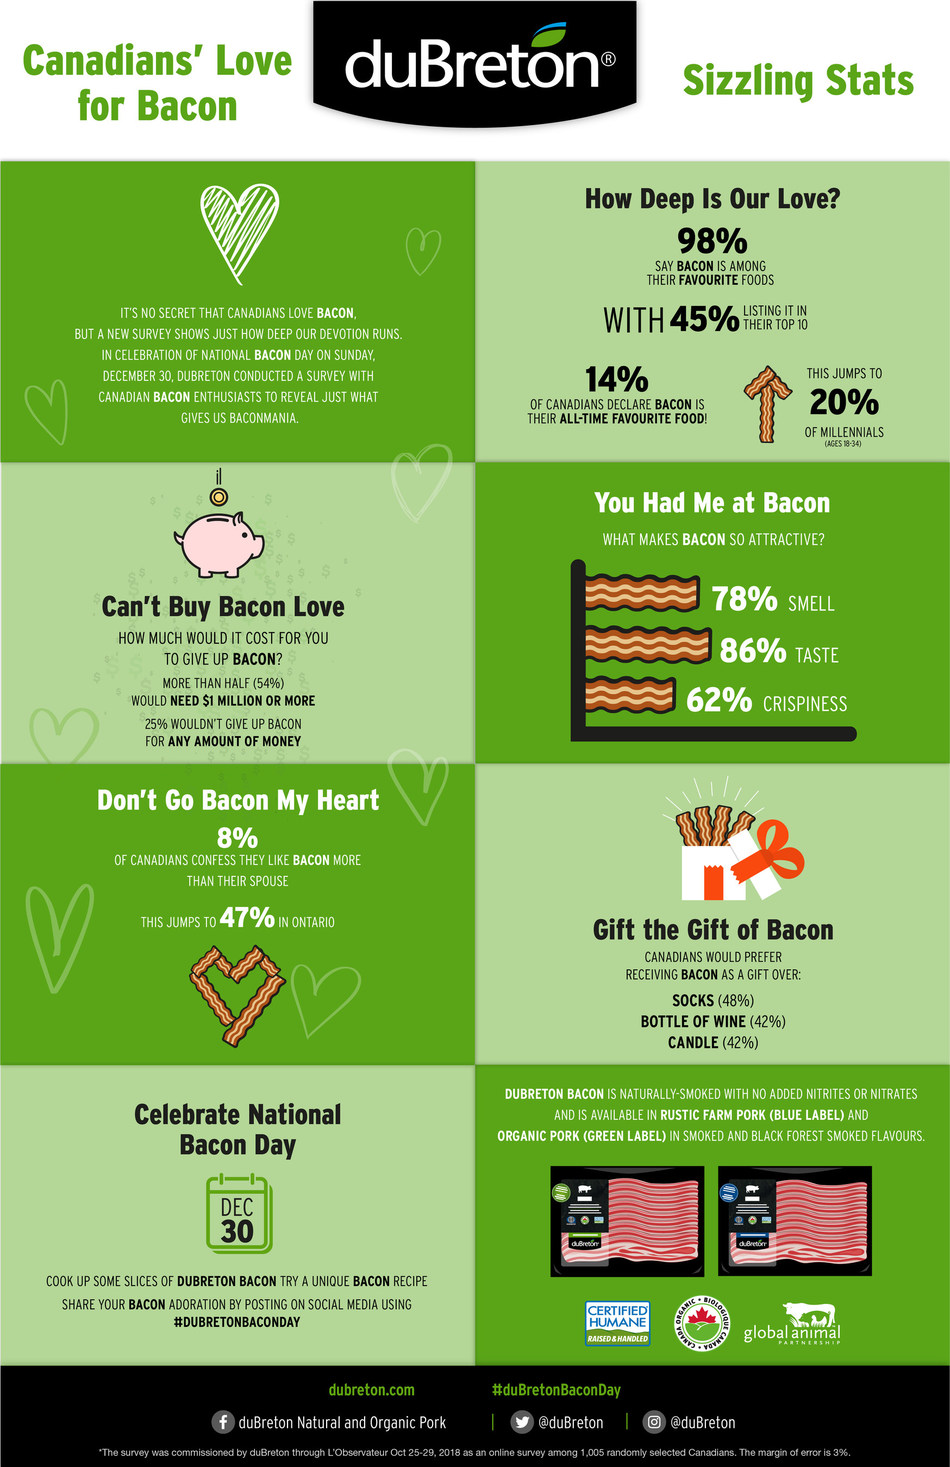 A new survey commissioned by duBreton Certified Humane and organic pork to celebrate National Bacon Day on Sunday, December 30 reveals how much Canadians love bacon. Infographic courtesy of duBreton. (CNW Group/Les Viandes du Breton)